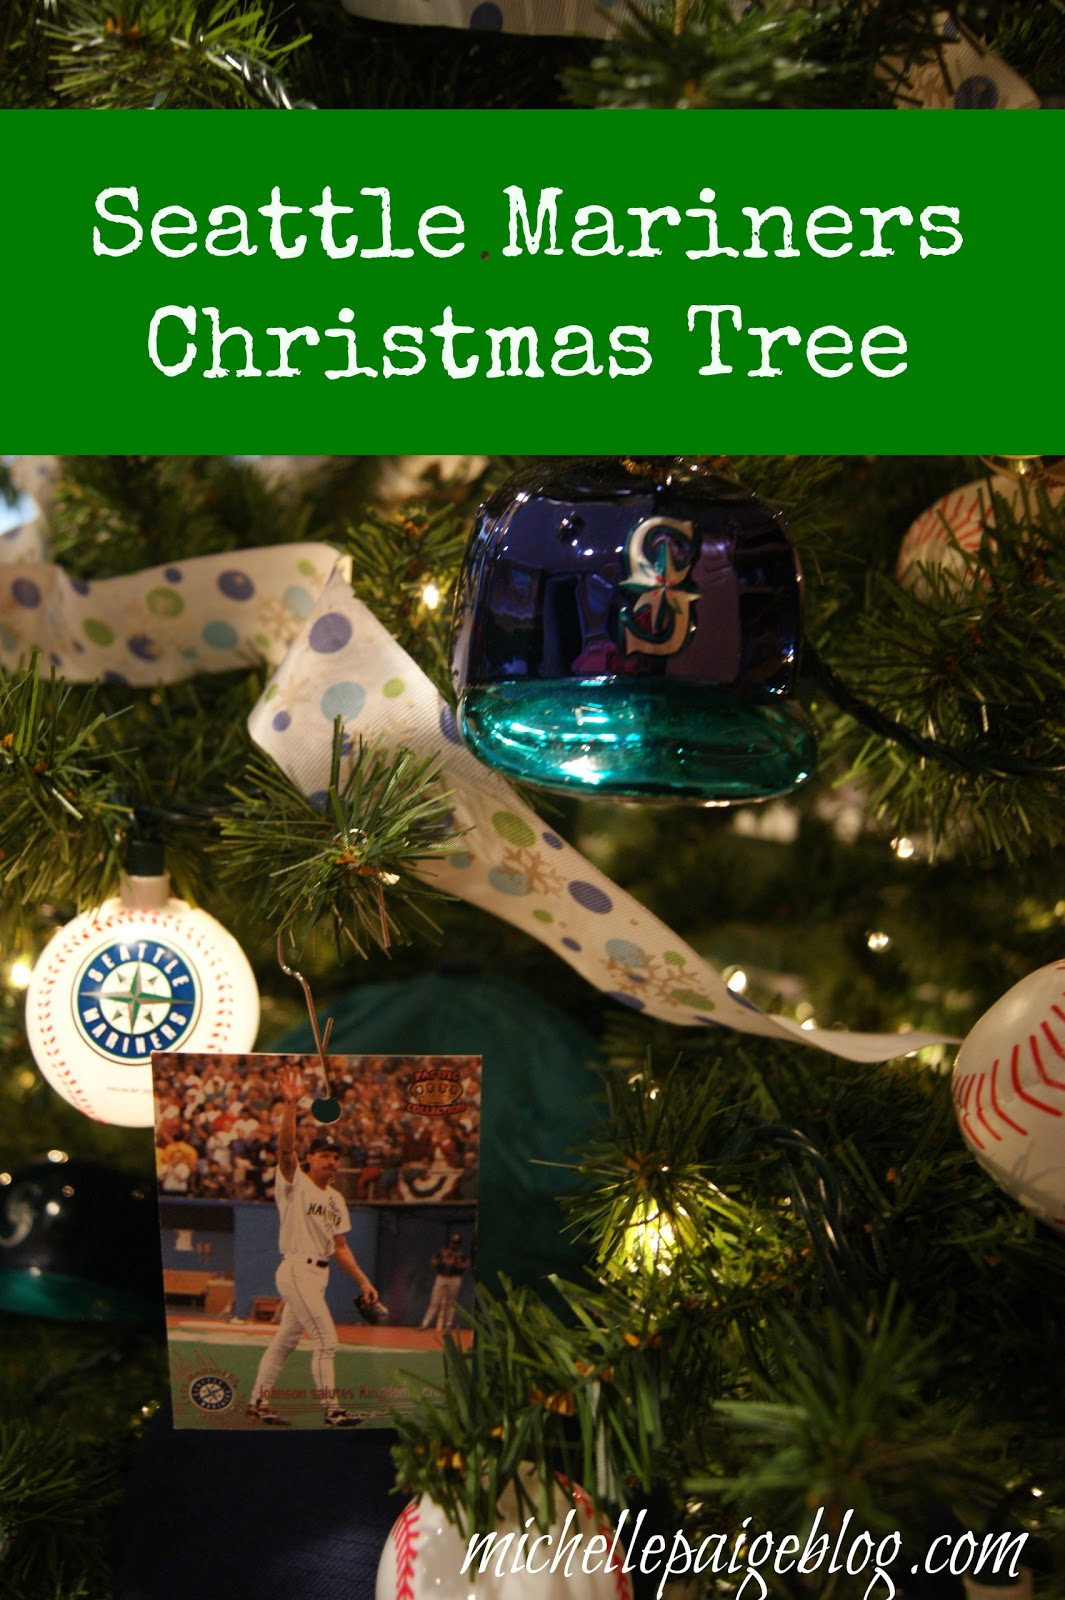 Seattle Mariners Christmas Tree